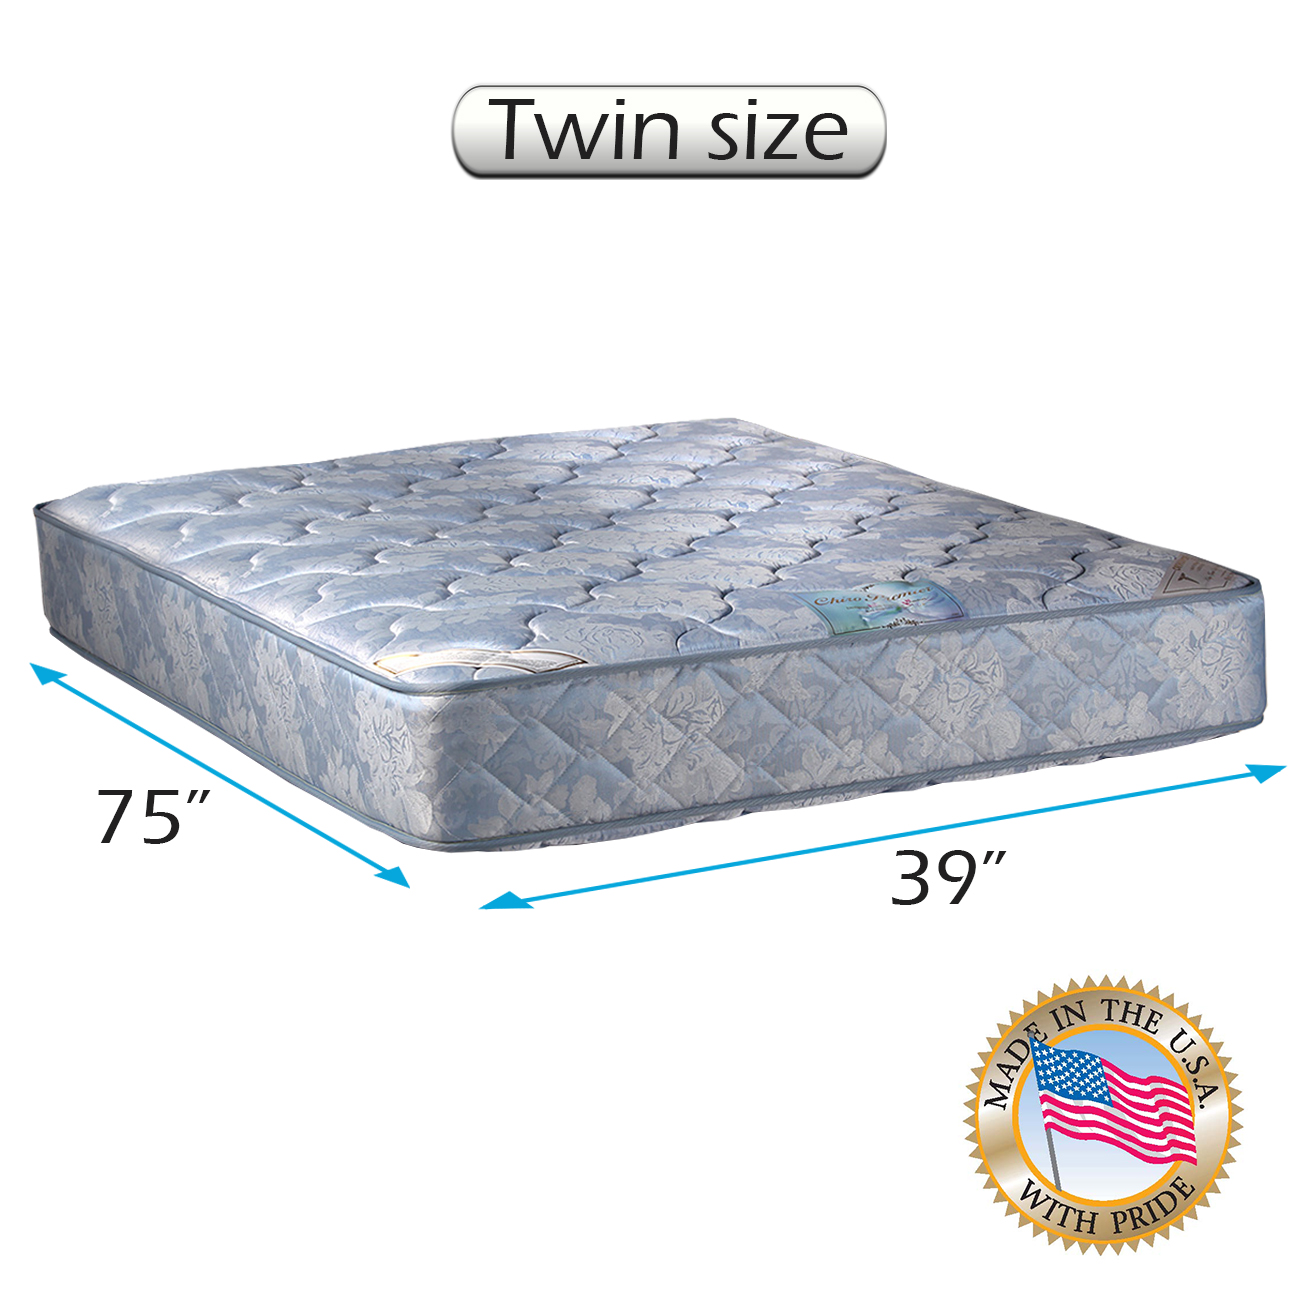 Chiro Premier Double-Sided Orthopedic (Blue Color) Twin Mattress Only with Mattress Cover Protector Included - Fully Assembled, Innerspring coils, Long Lasting by Dream Solutions USA